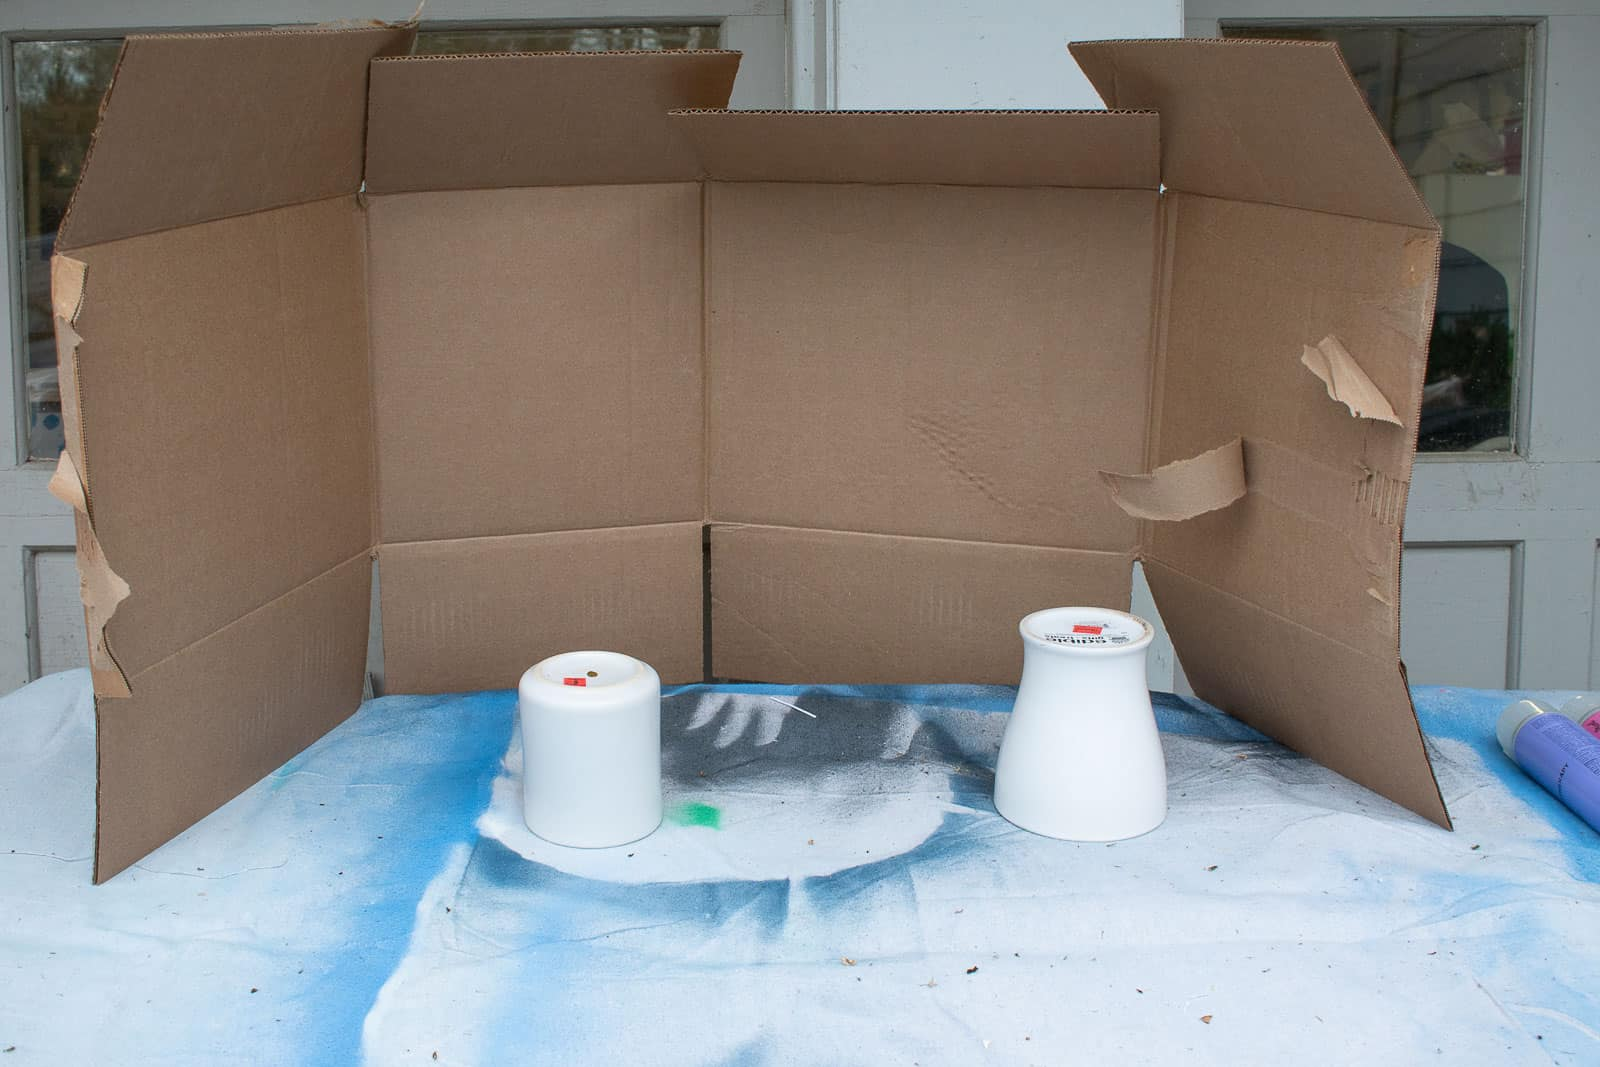 prepare the area for spray painting